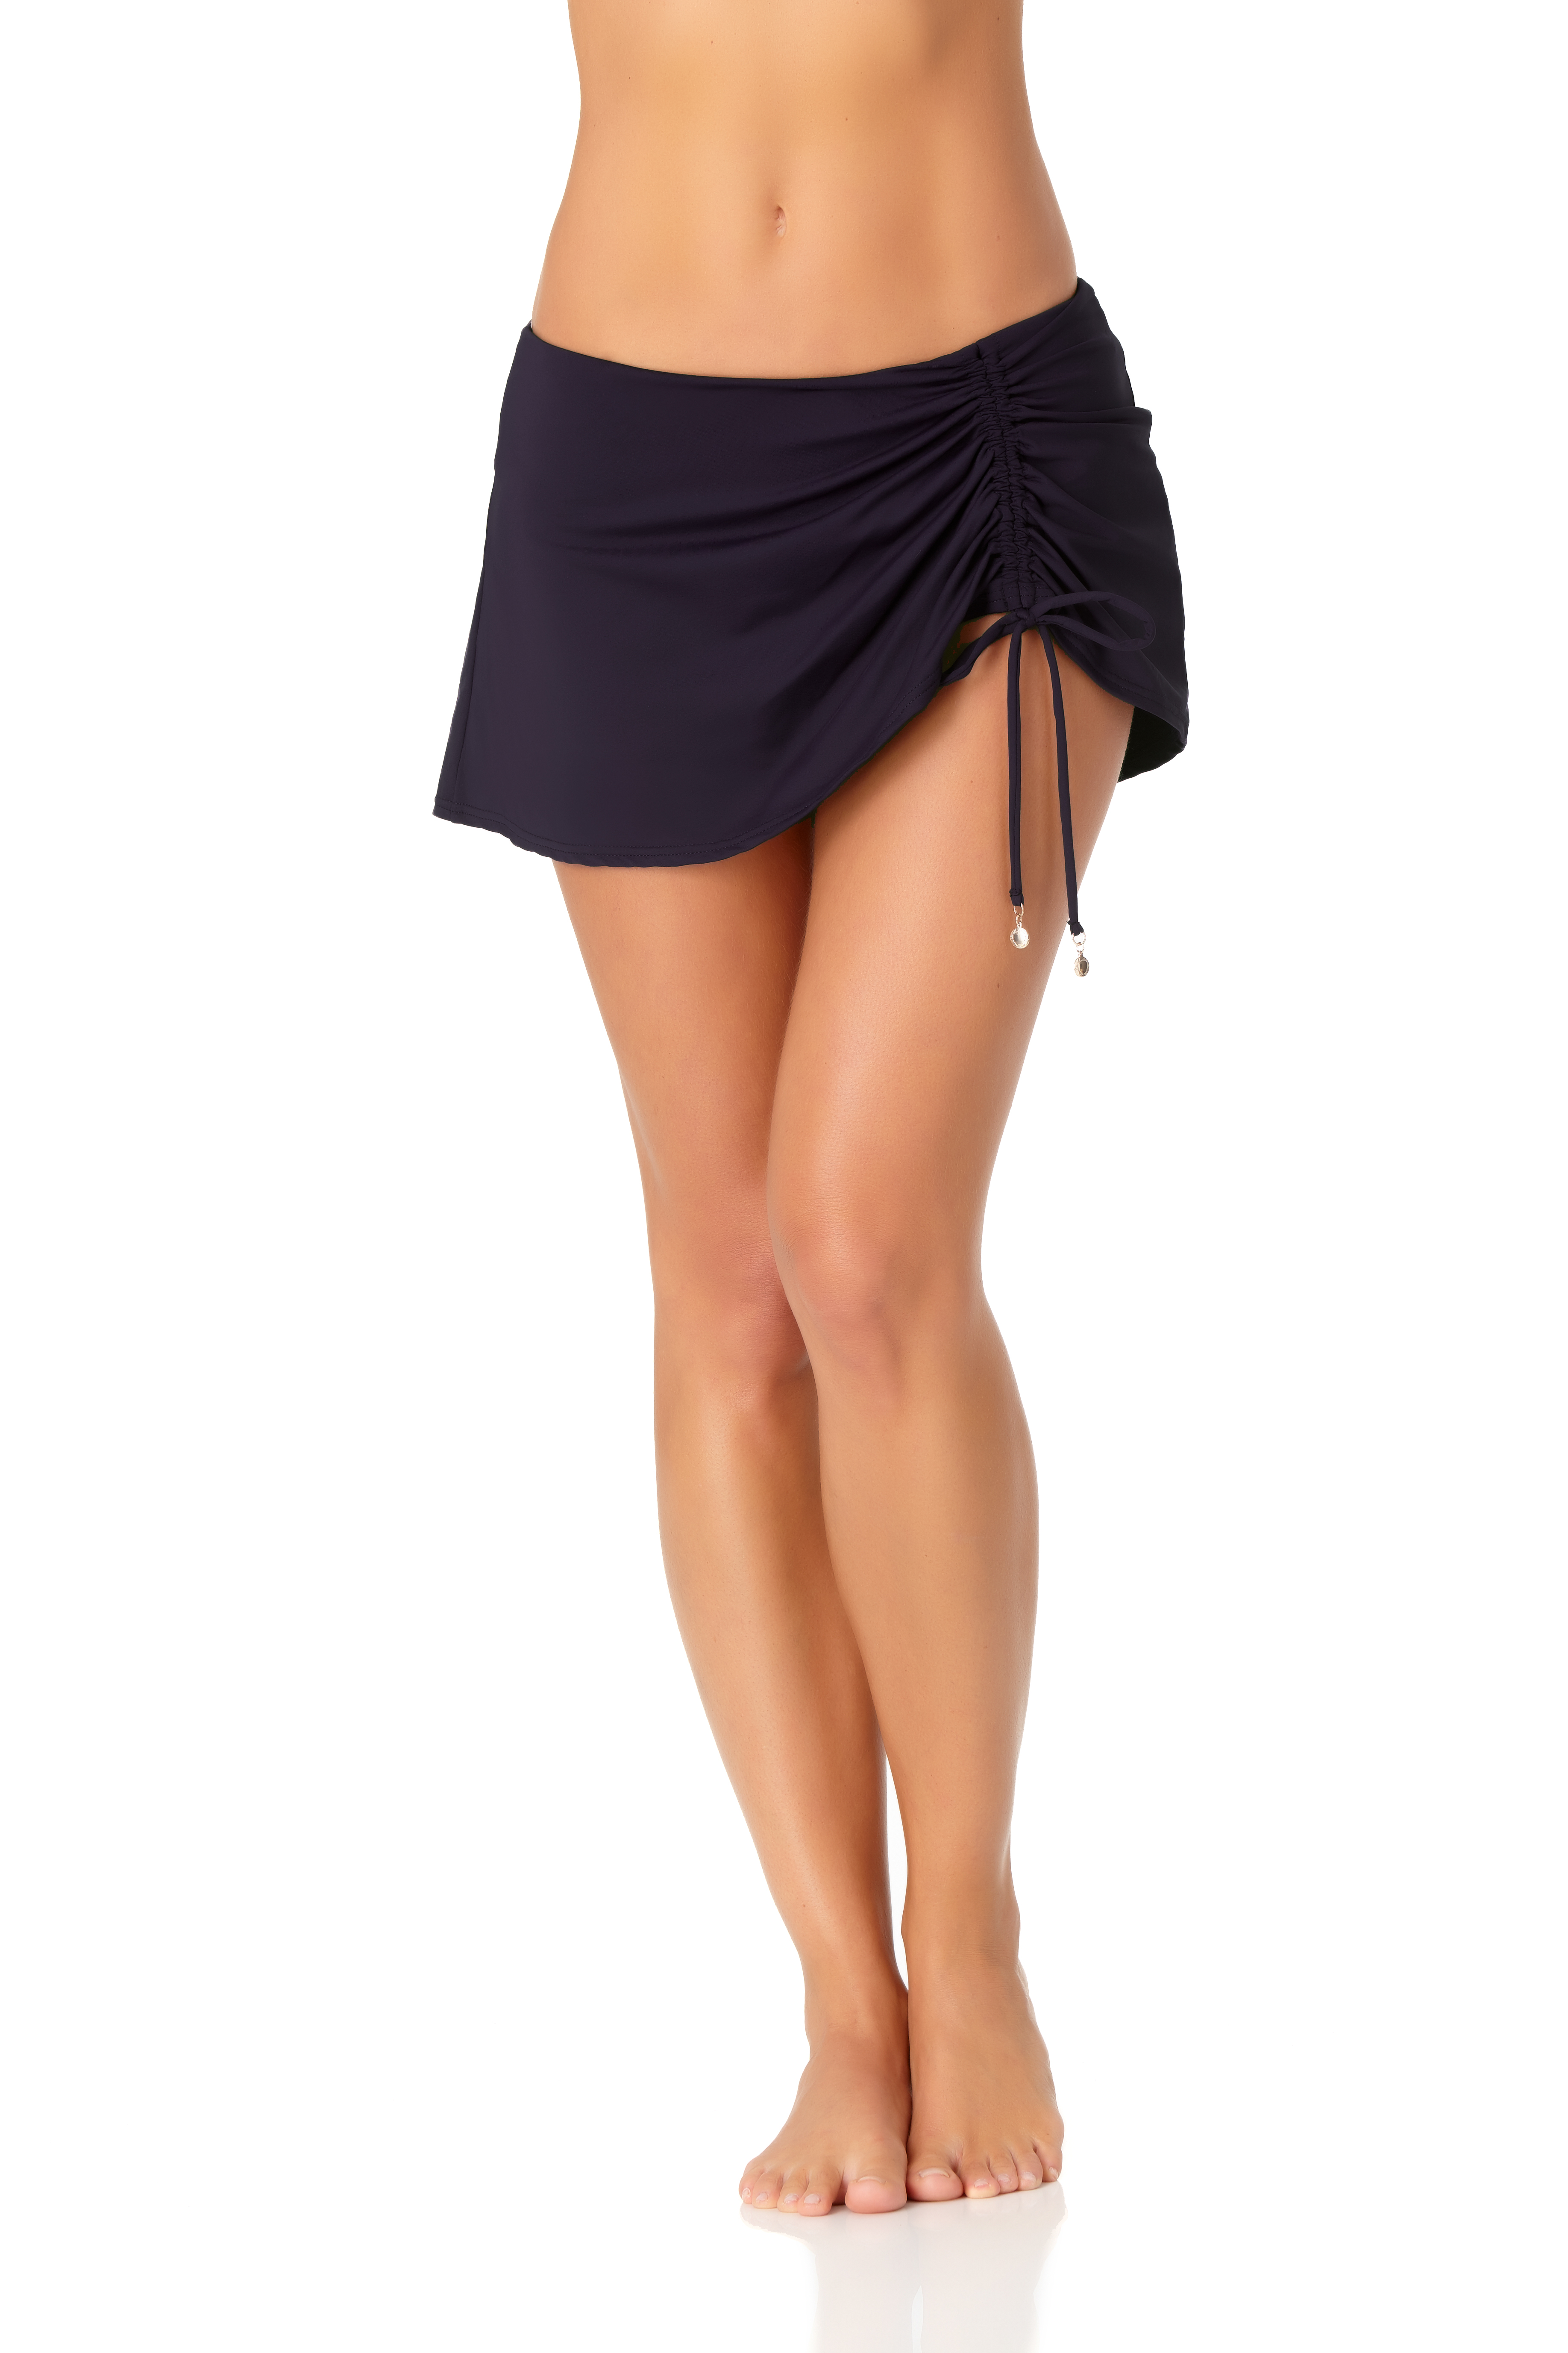 Anne Cole® Live in Color Sarong Swimsuit Skirt Bottom - Misses -Navy - Front